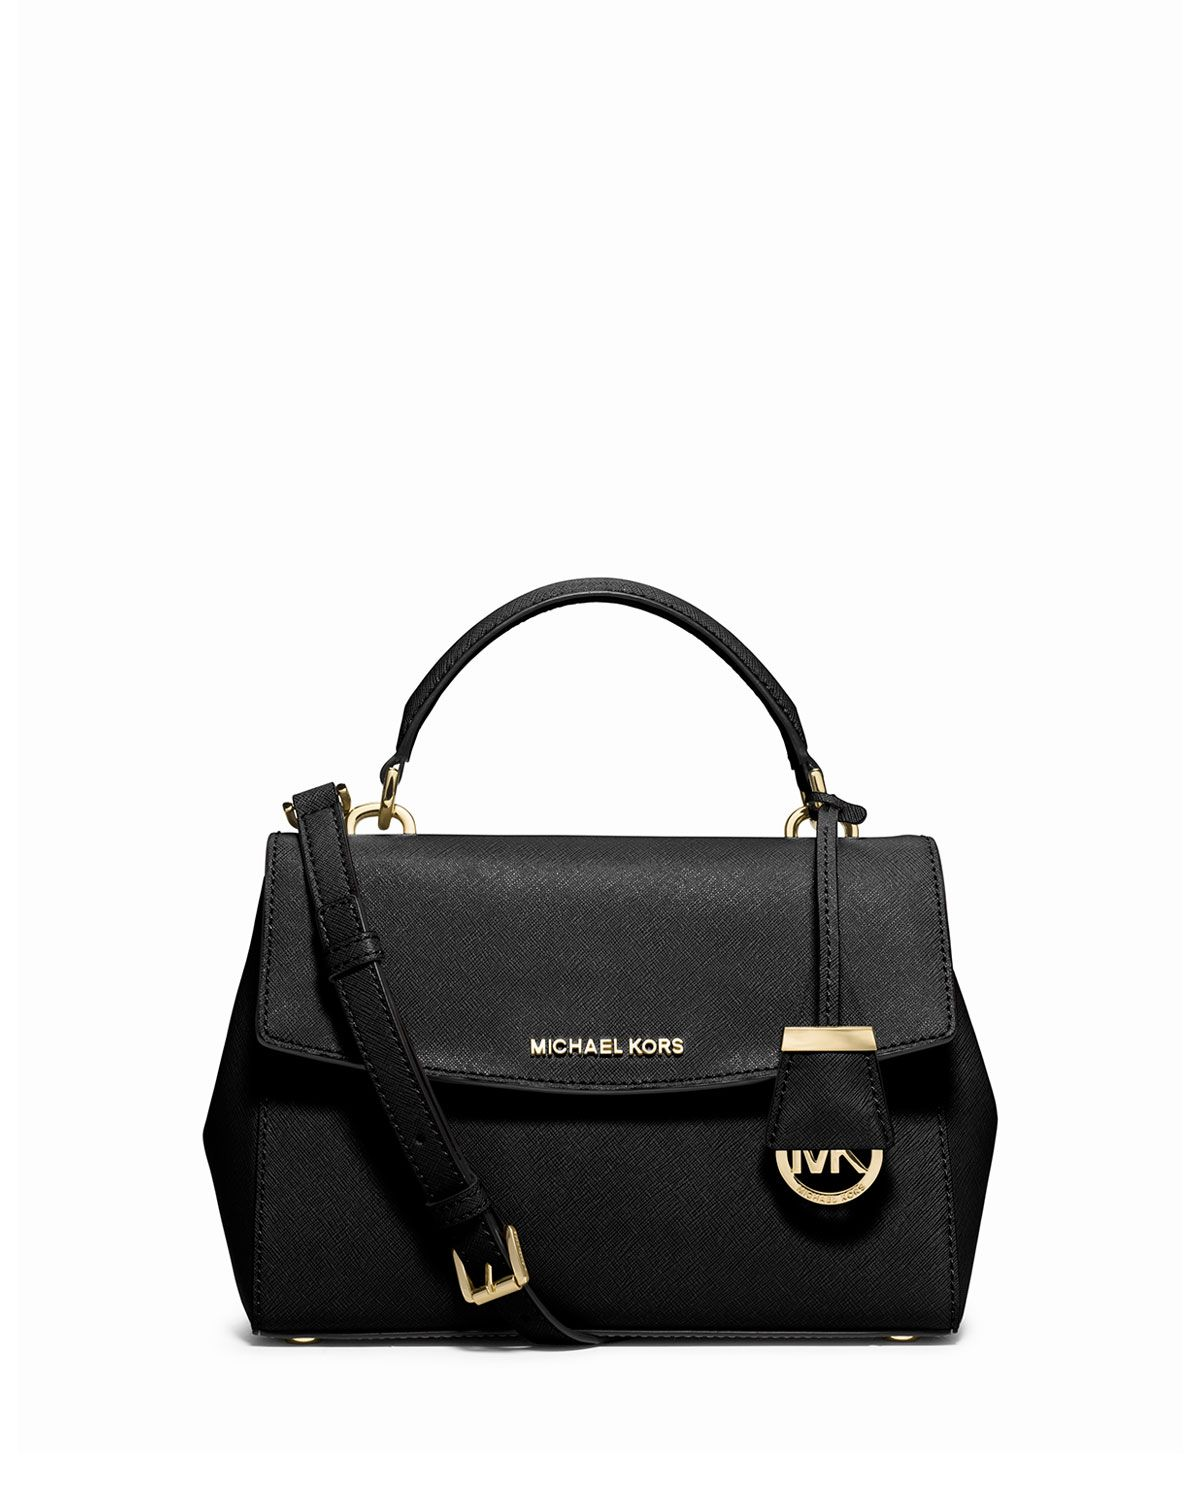 c3347072df4624 Ava Small Saffiano Leather Satchel Bag, Black, Size: S - MICHAEL Michael  Kors